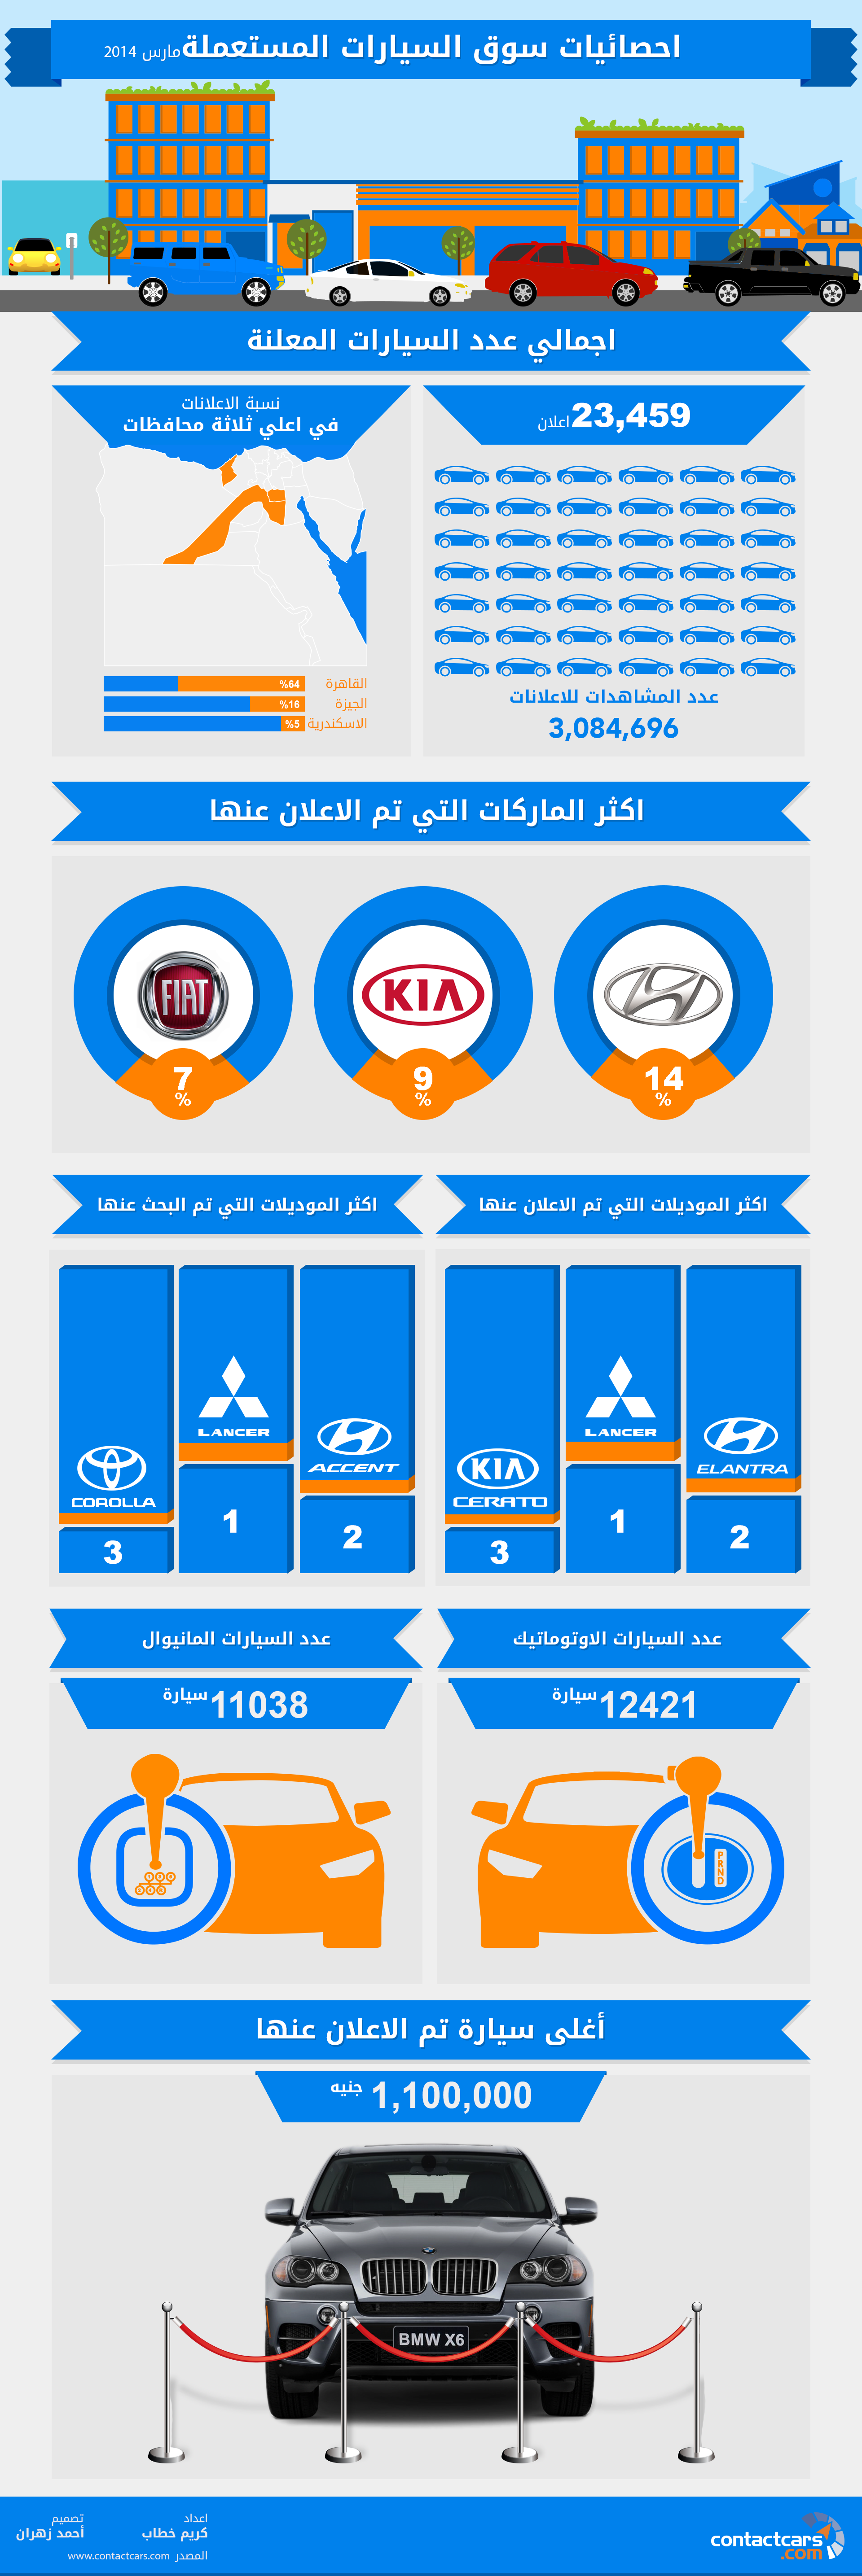 March 2014 Market stats